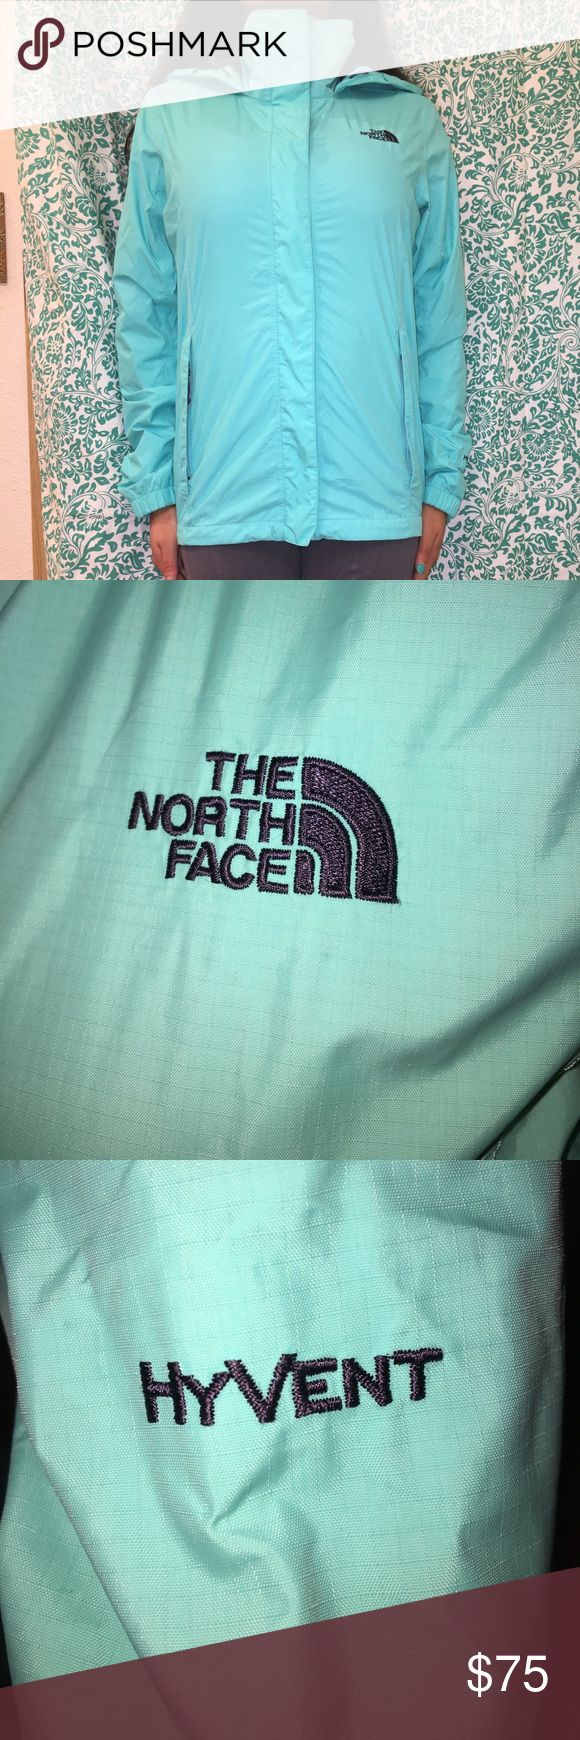 ☔️The North Face windbreaker jacket☔️ This jacket was only used at least 5 times and has no damage or stains on it! It is extremely comfortable and warm to wear in the rain or snow! The North Face Jackets & Coats